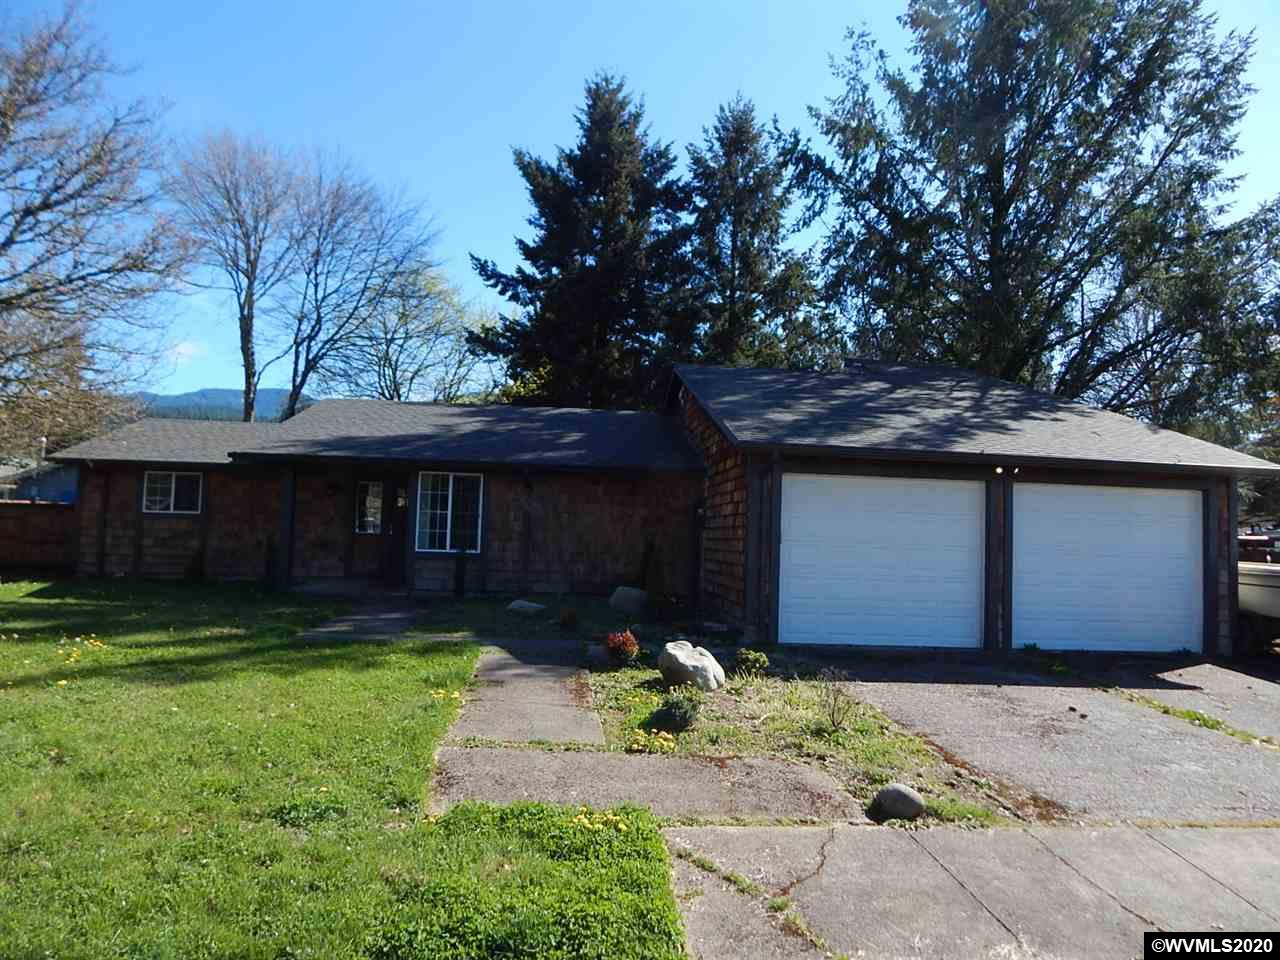 Accepted Offer with Contingencies. Tastefully and completely updated.  Cedar siding with newer roof.  Open kitchen with beautiful cabinetry and concrete counters.  Room for RV.  Nice fenced backyard.  Quiet dead end street location near the edge of town.  Loft space with separate entrance.